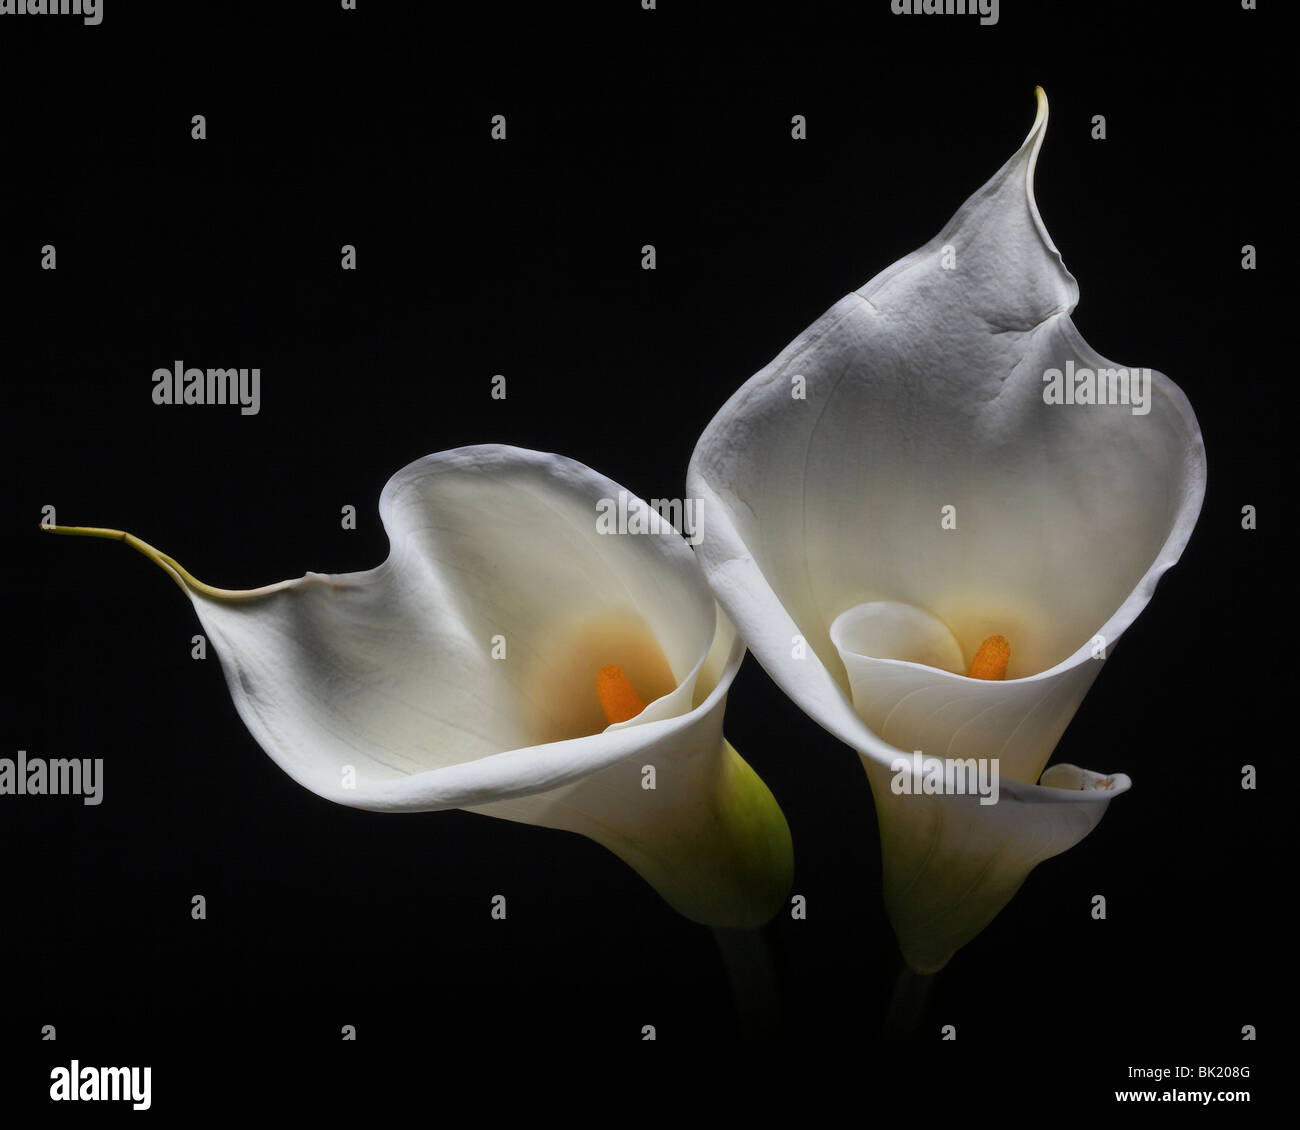 Two Calla Lilies against black background - Stock Image